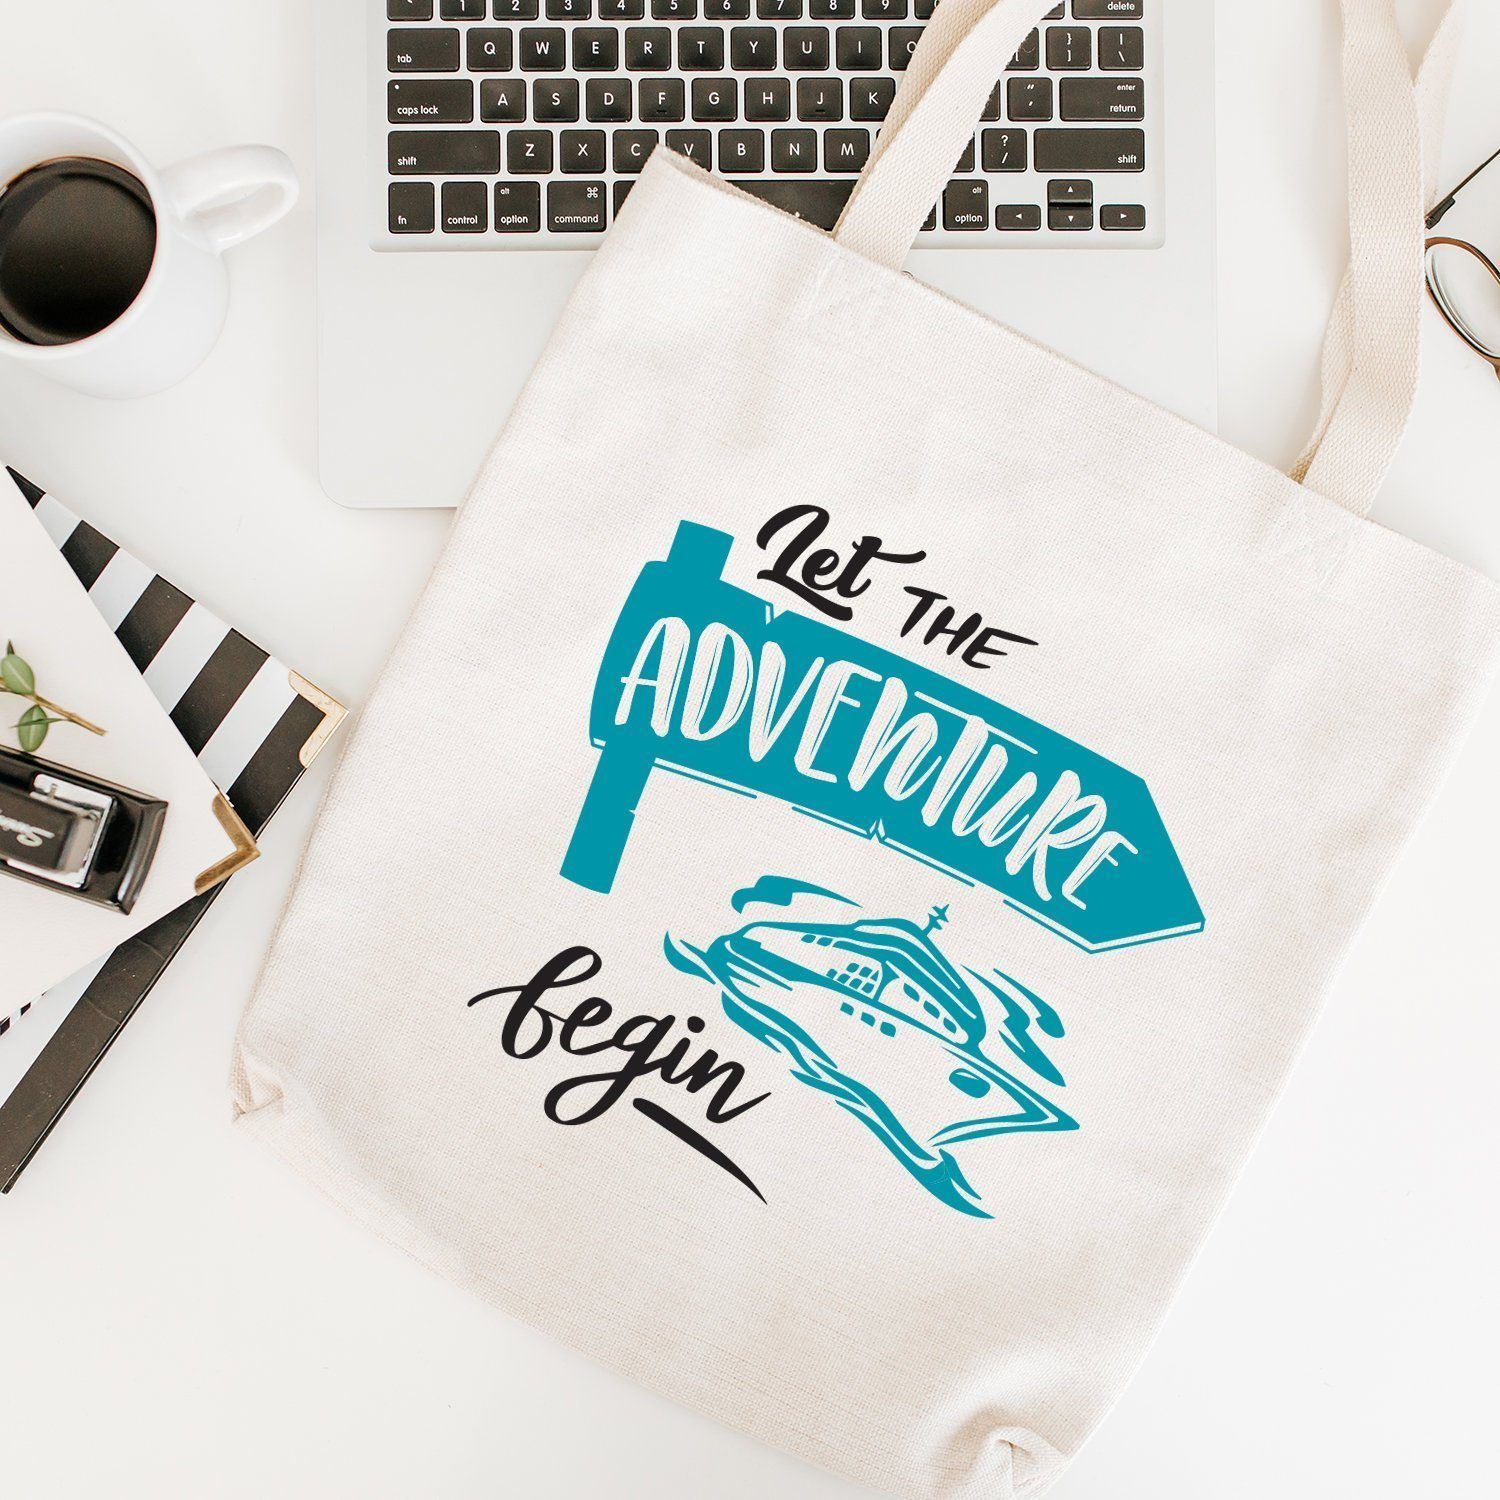 Let The Adventure Begin Tote Bag With Cruise Boat, Travel, Holiday Shopping Bag